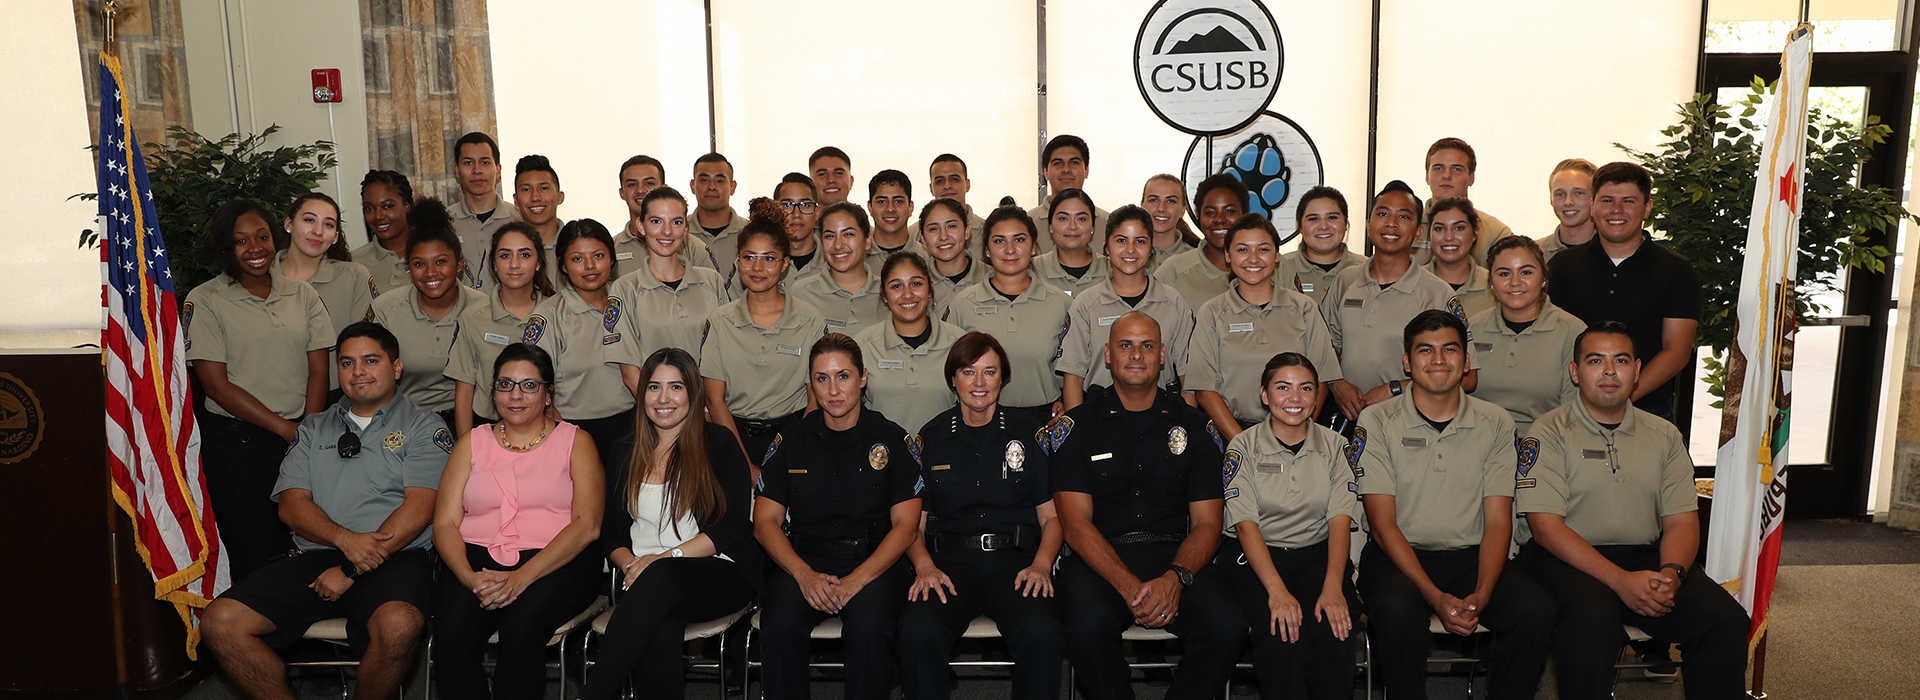 43 students graduate from CSUSB CSO Academy